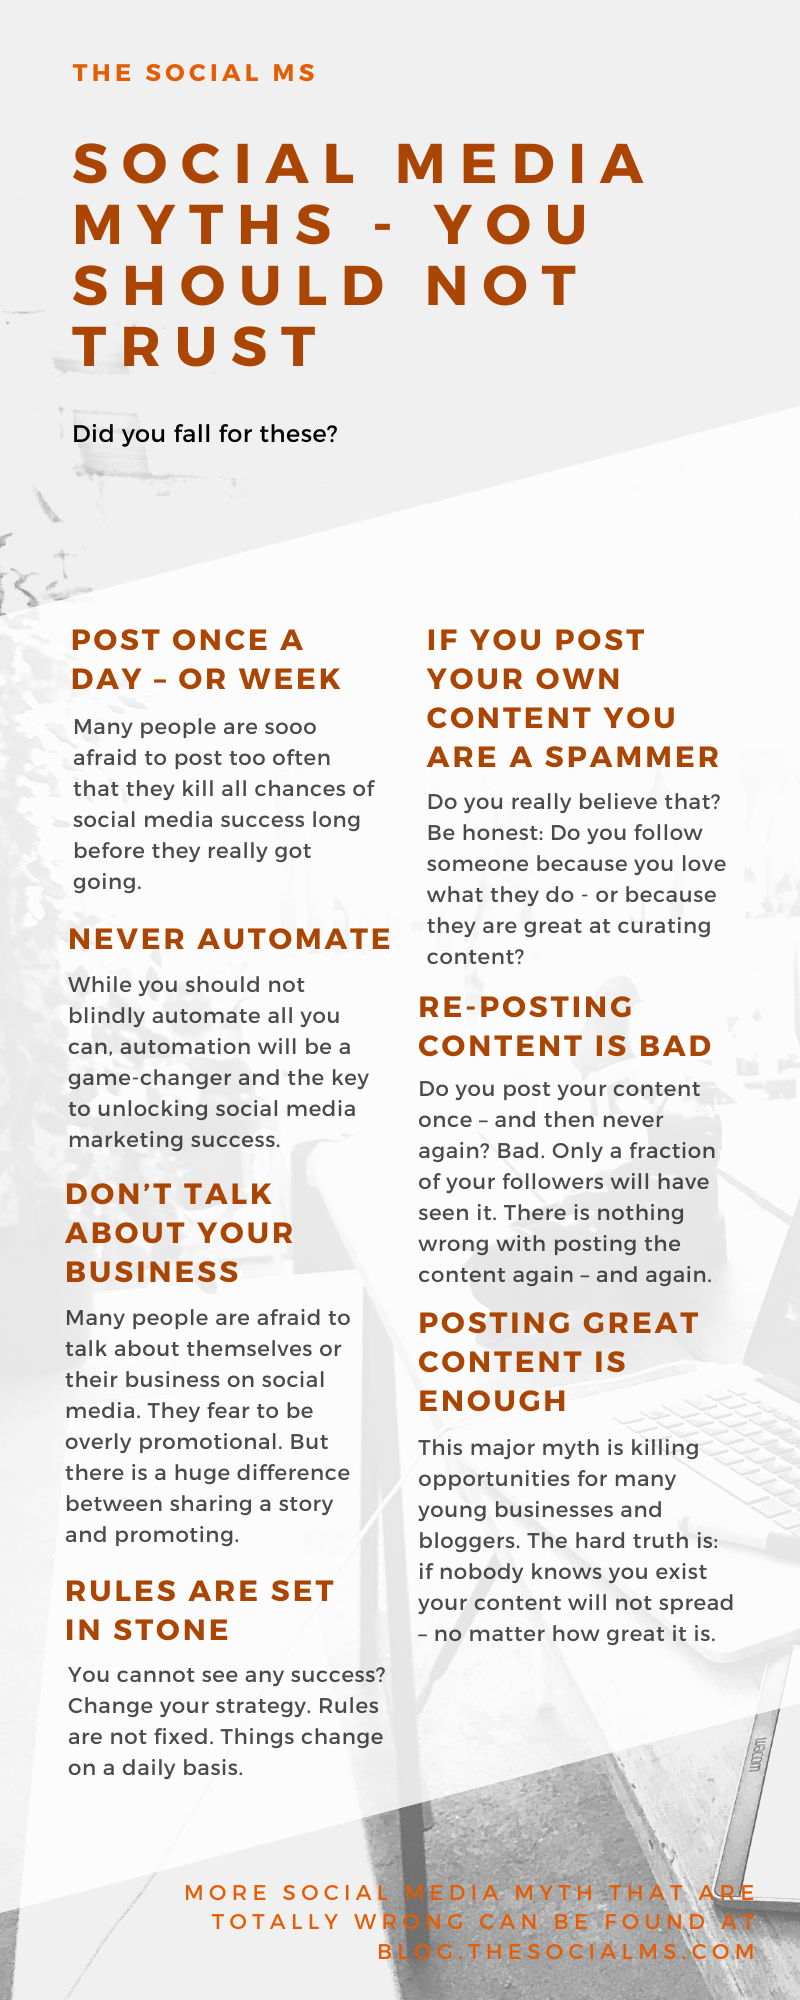 There is a lot of social media advice out there that is outdated or even plain wrong. Here are some common myths about online and social media marketing that you should better ignore. #socialmedia #socialmediamistakes #socialmediamarketing #socialmediatips #socialmediaadvice